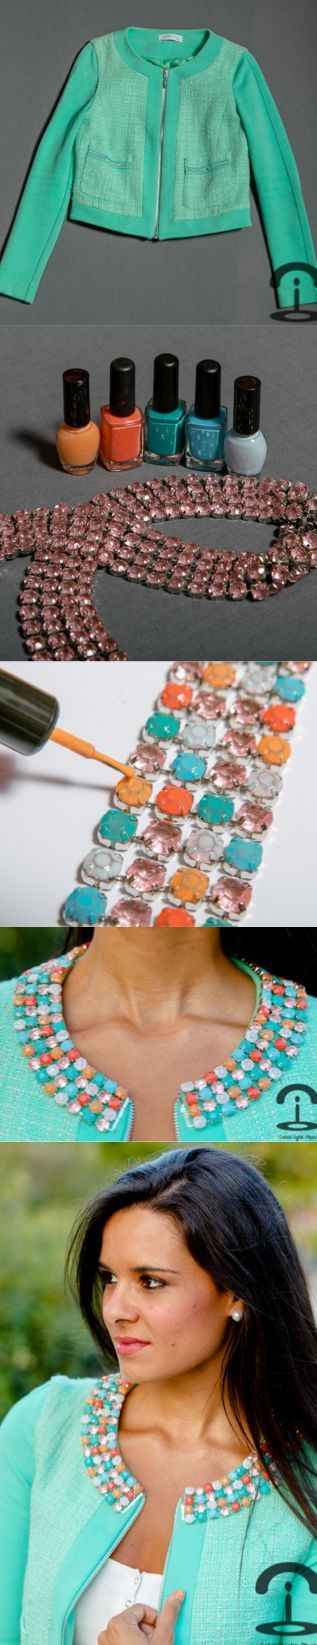 DIY Colorful Strass Jacket. Love this idea for jewelry!!